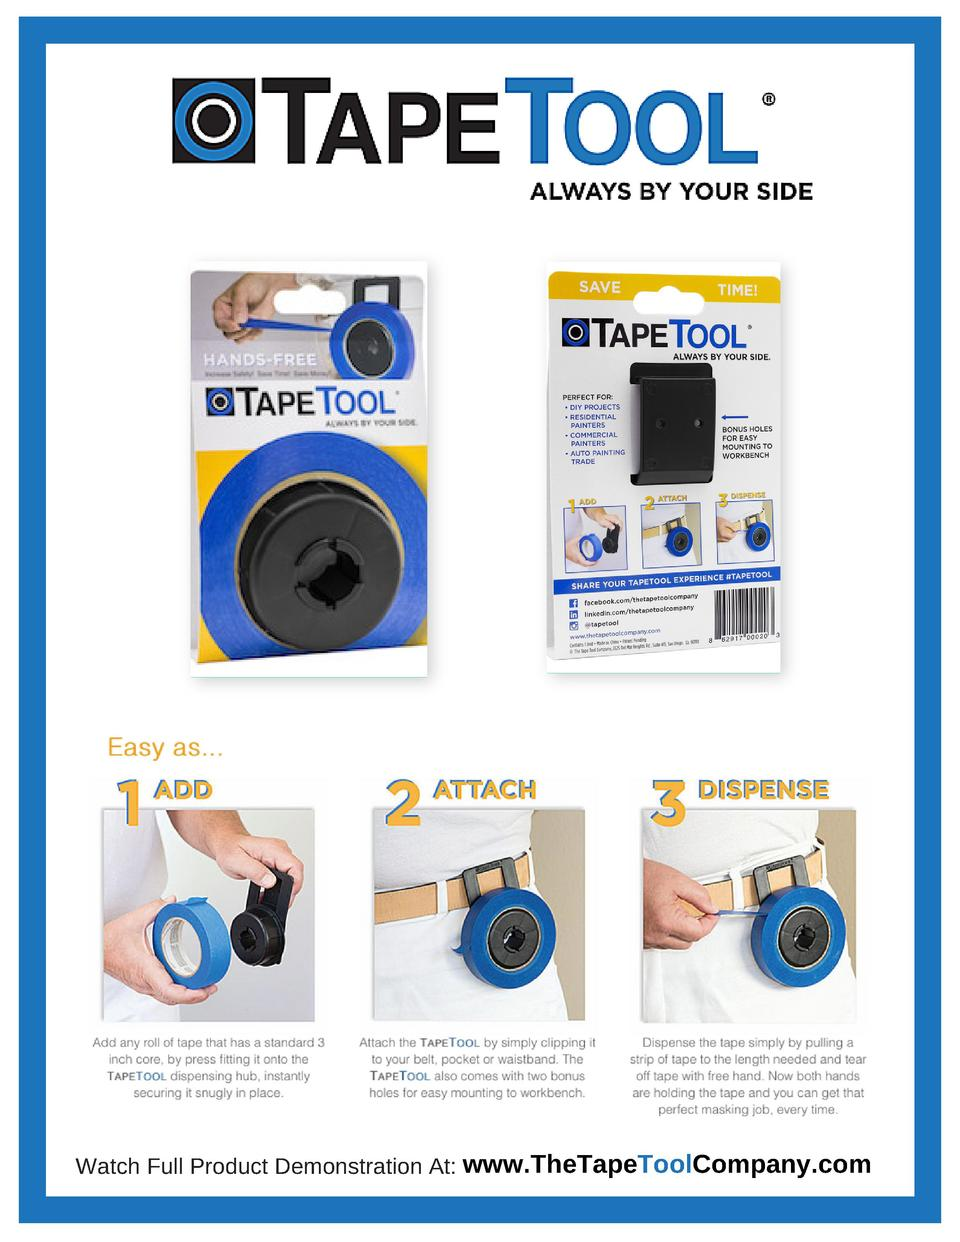 Watch Full Product Demonstration At  www.TheTapeToolCompany.com